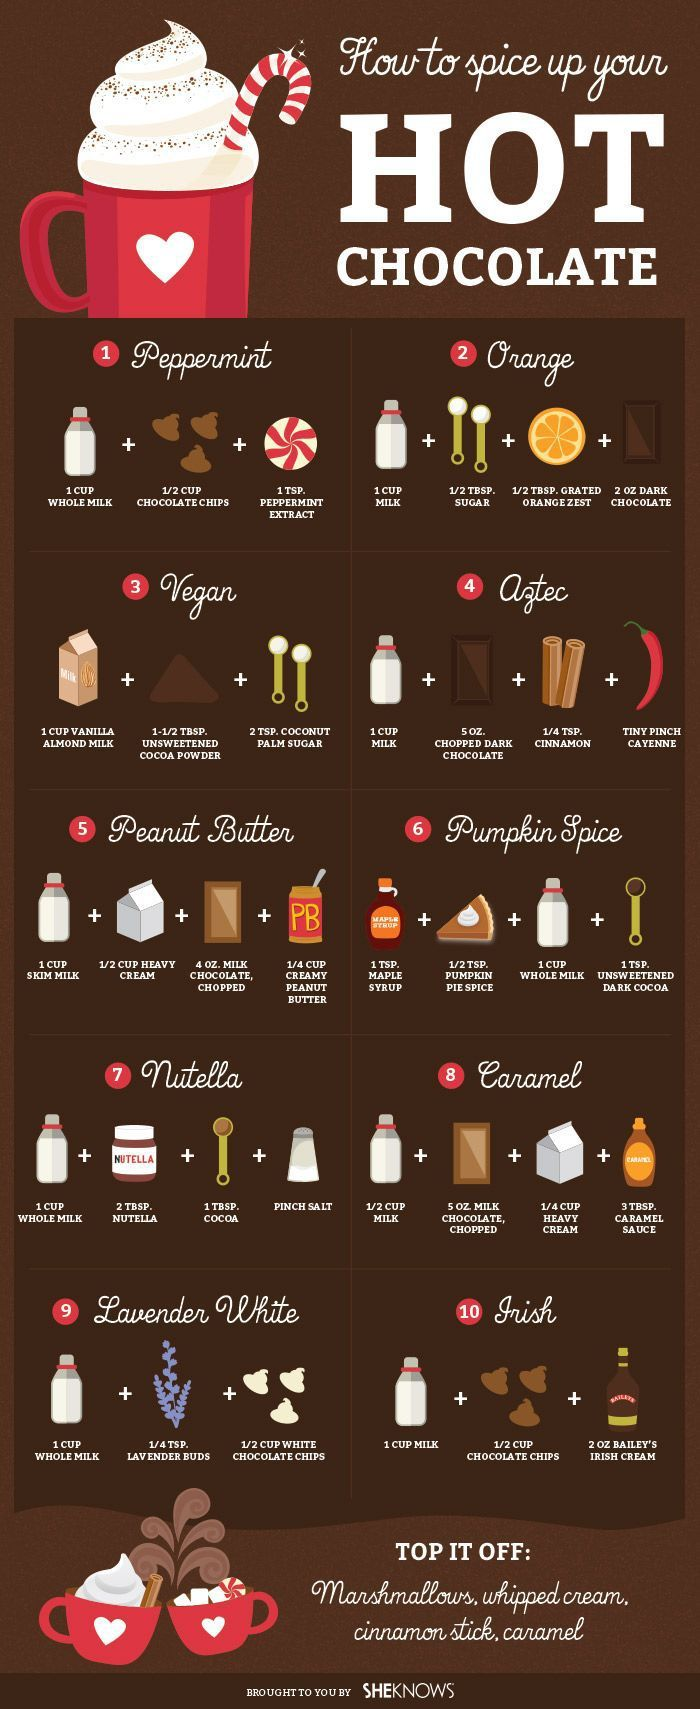 How To Spice Up Your Hot Chocolate Infographic Example